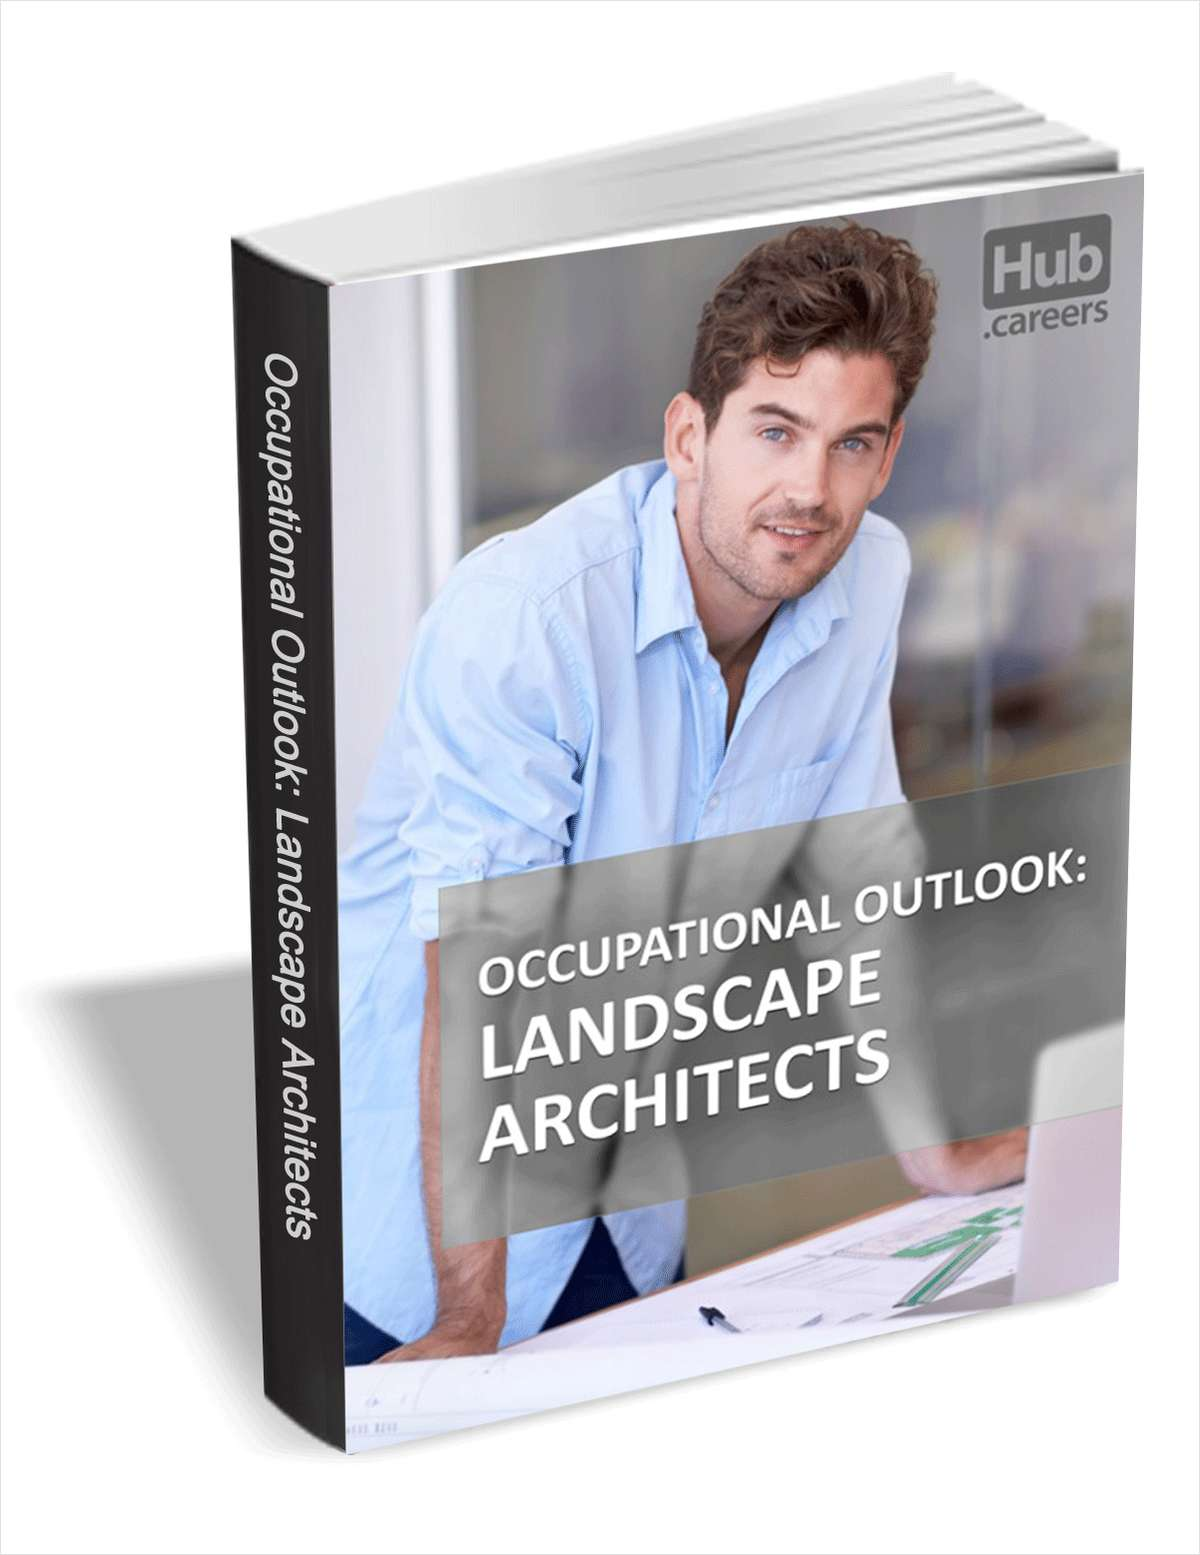 Landscape Architects - Occupational Outlook